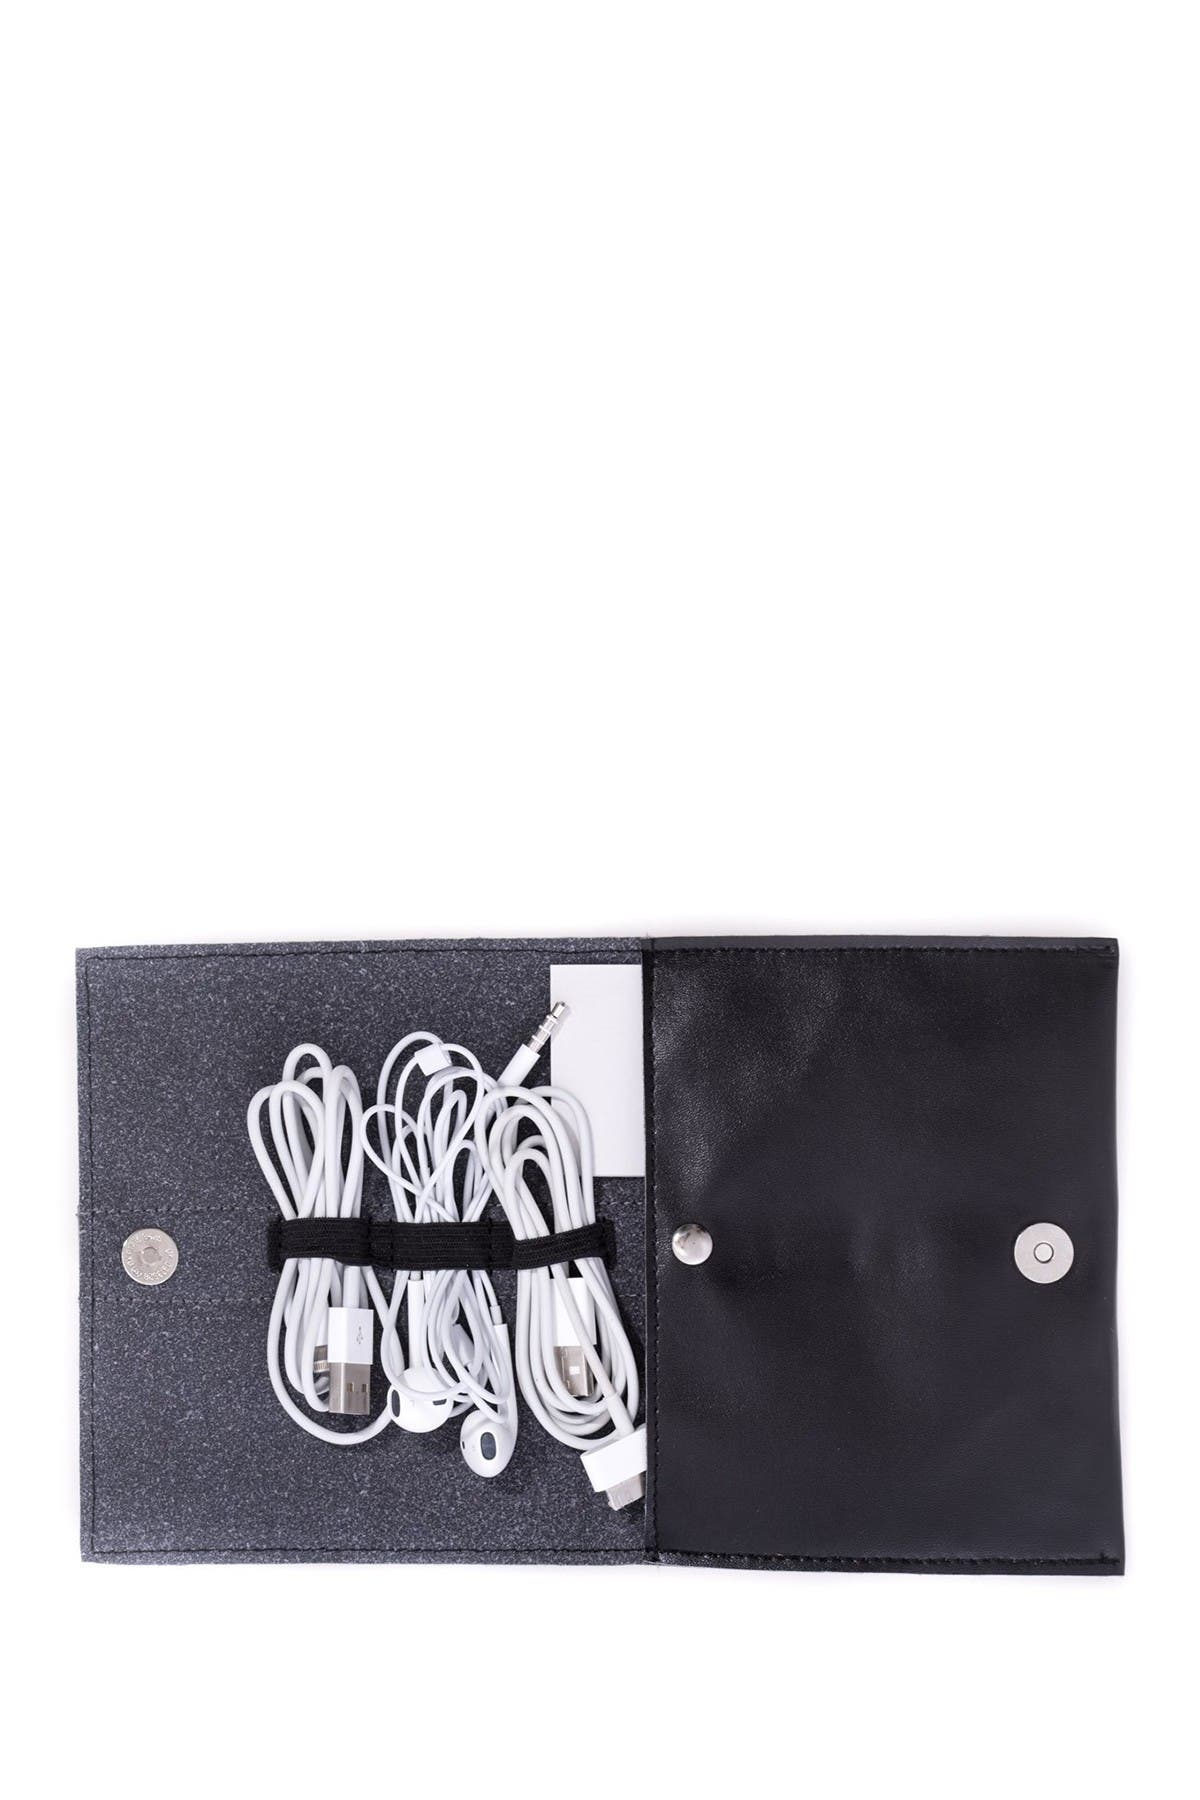 Image of Bey-Berk Black Leatherette Travel Charger Case & Accessories Pouch